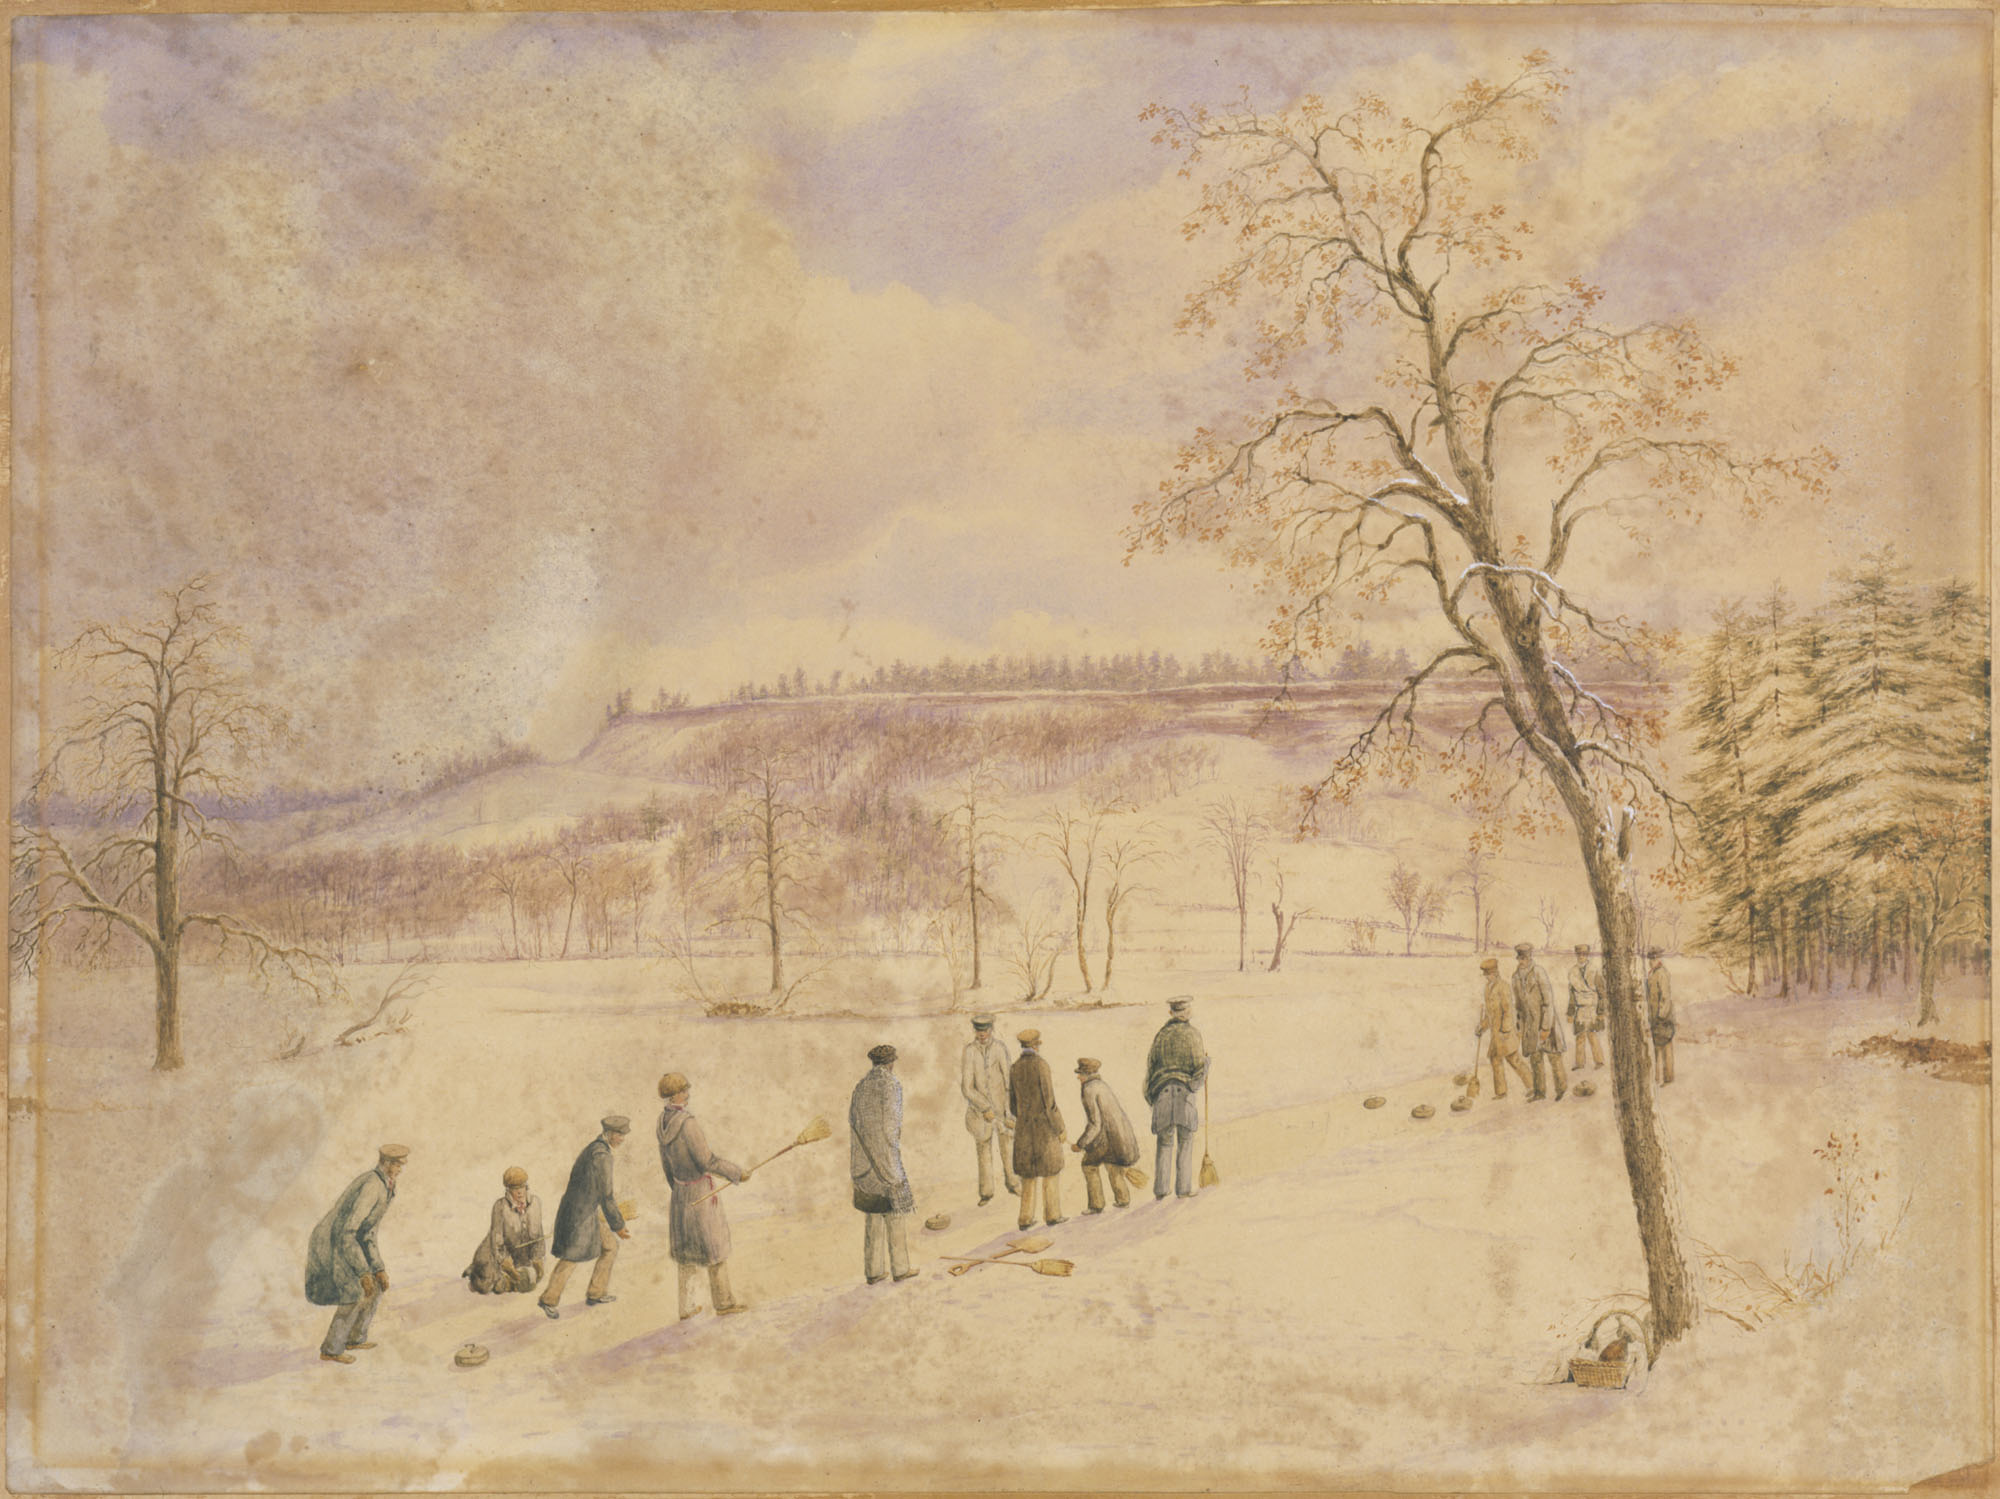 Watercolour painting titled CURLING IN HIGH PARK, TORONTO, 1836